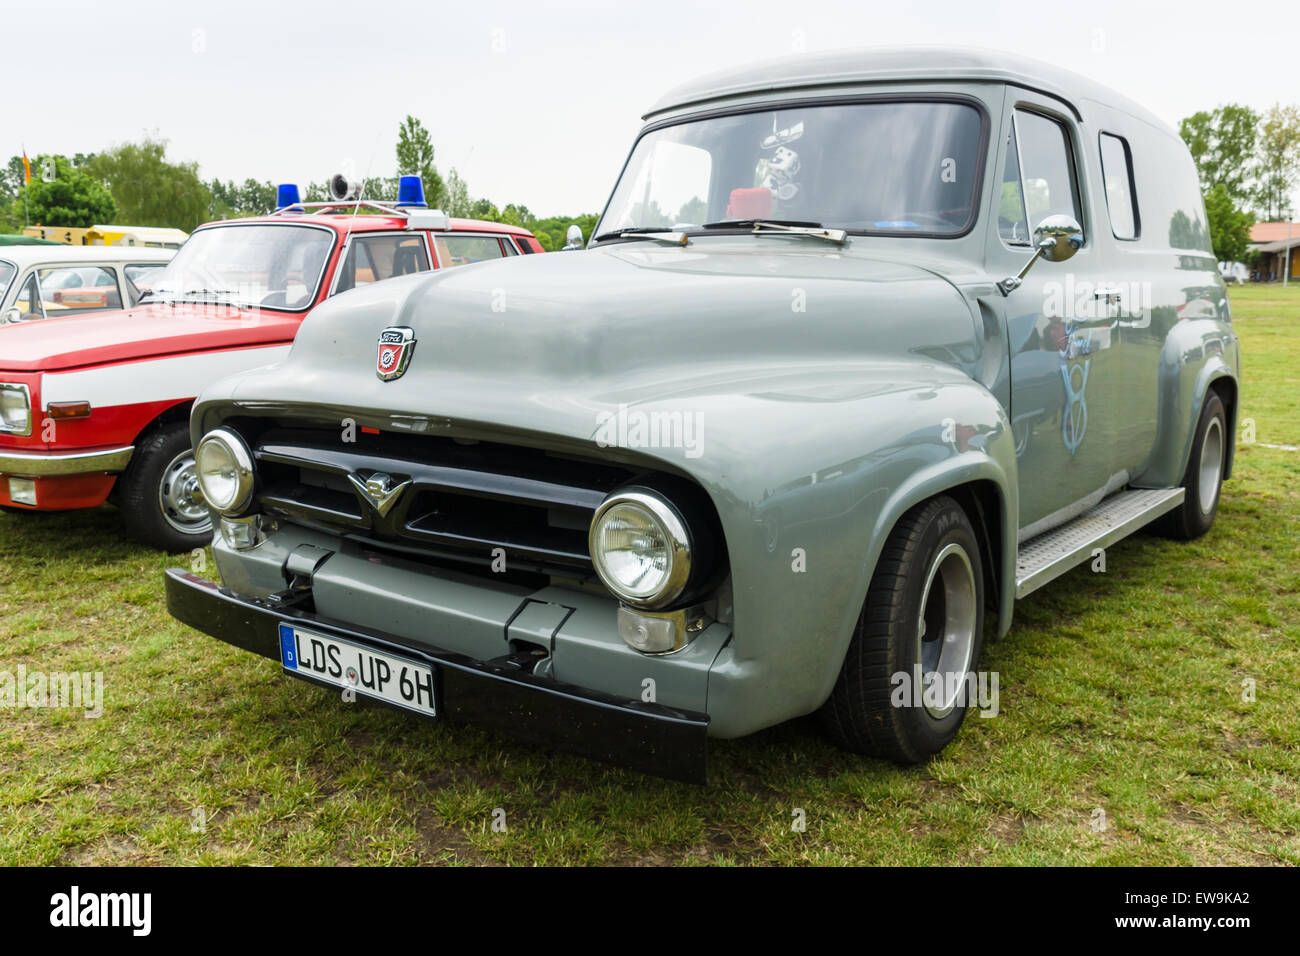 Ford F100 Stock Photos Images Alamy 1948 Panel Truck Paaren Im Glien Germany May 23 2015 Full Size Pickup